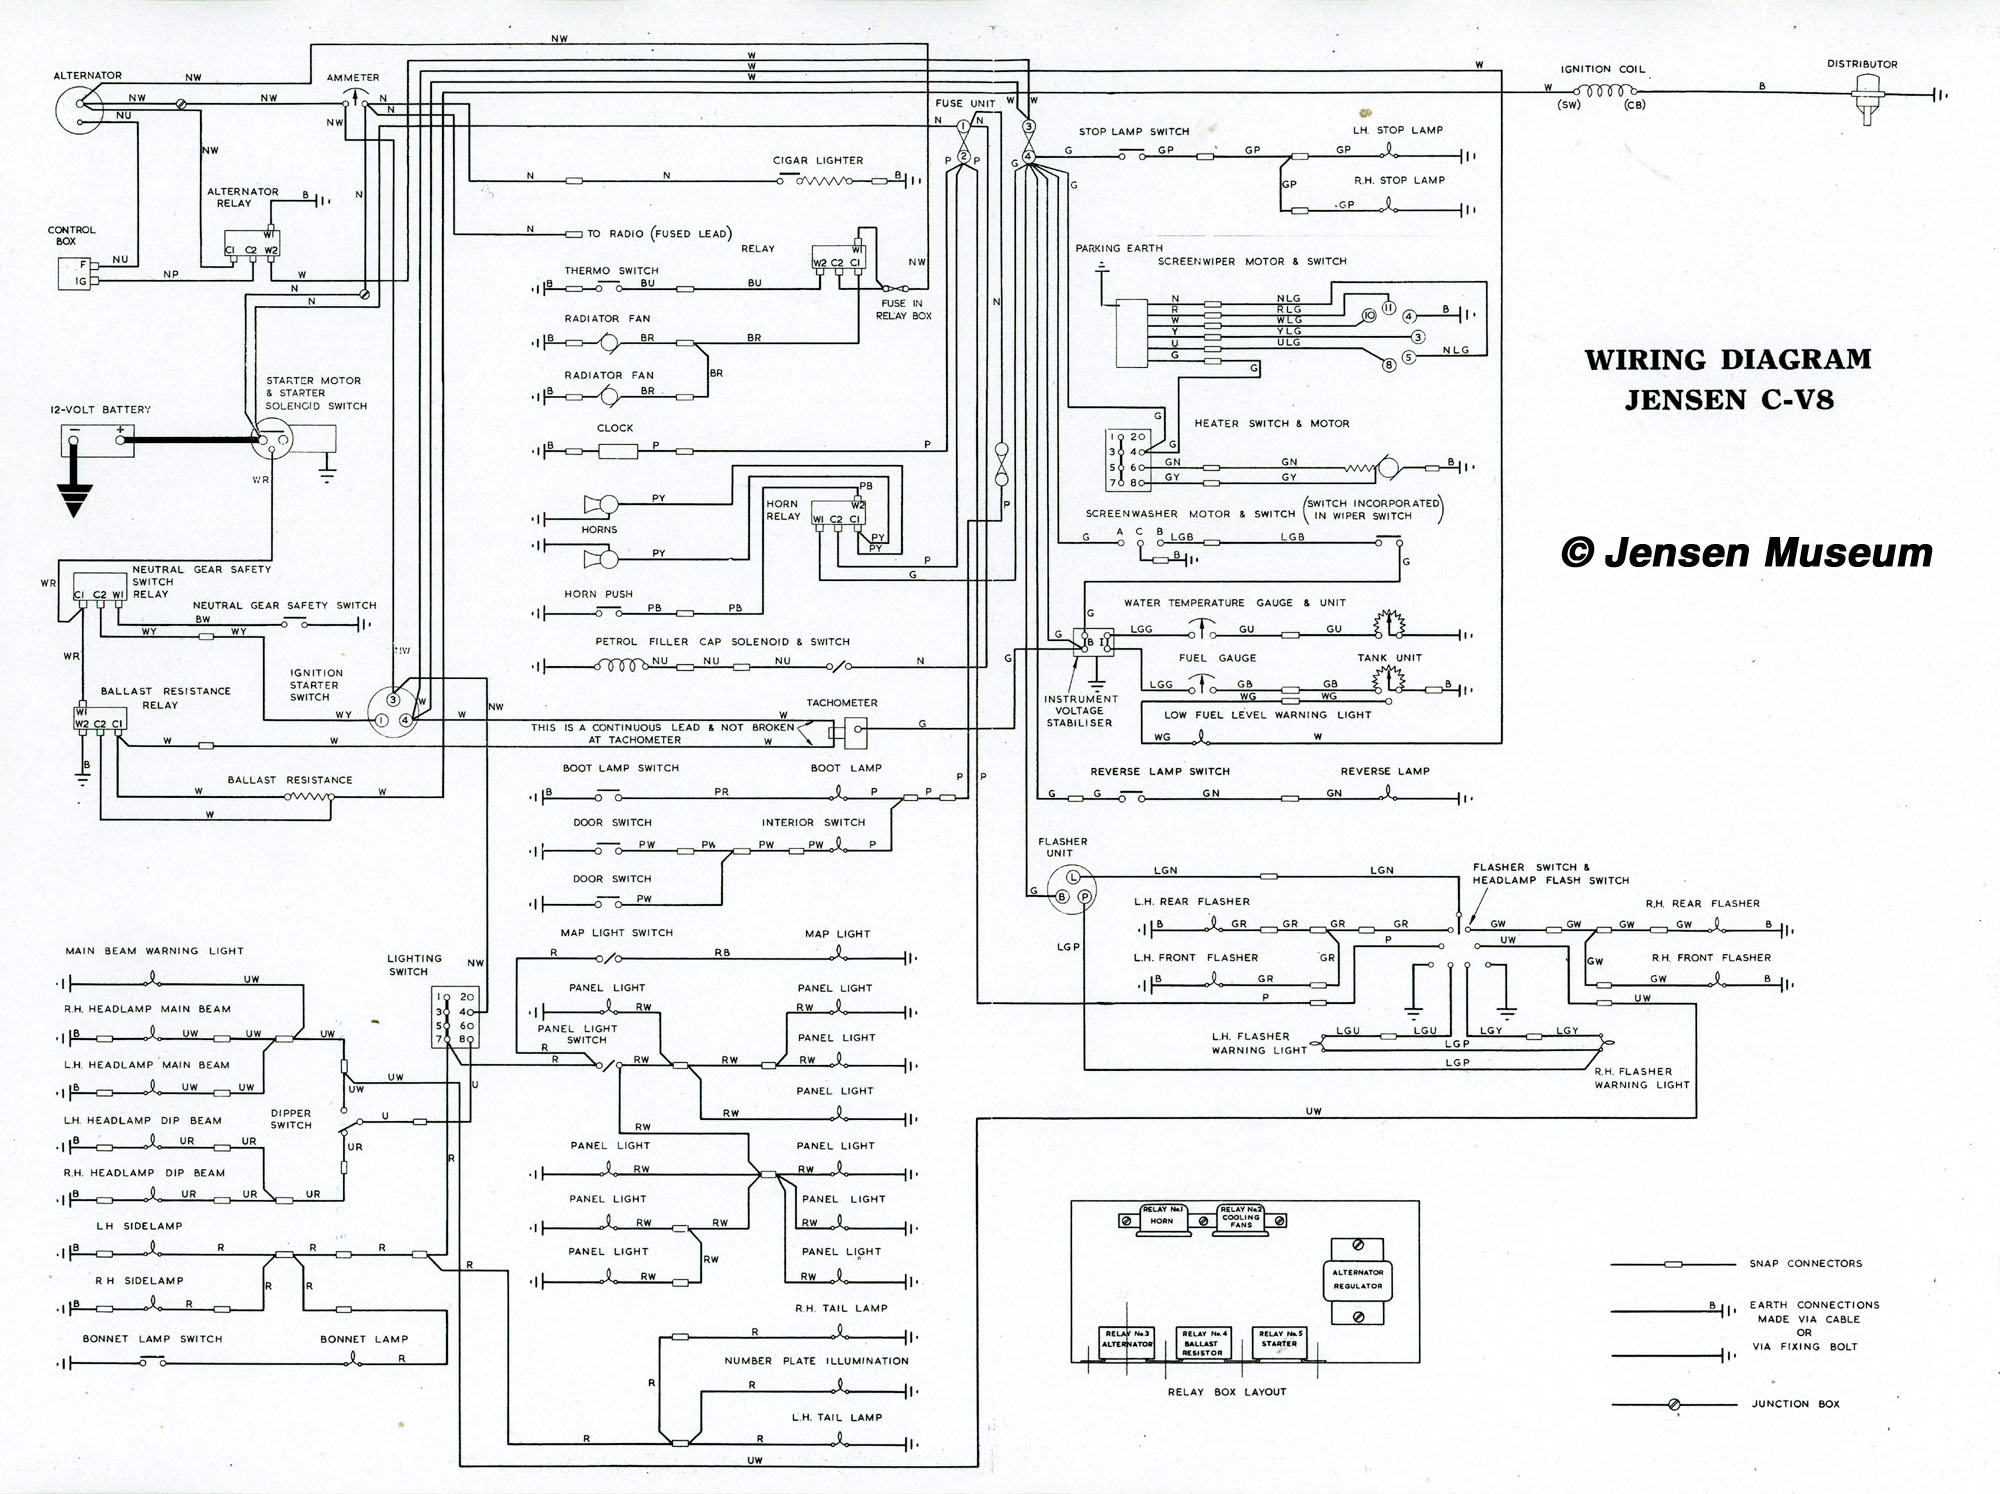 CV8 1 and 2 Wiring Diagram